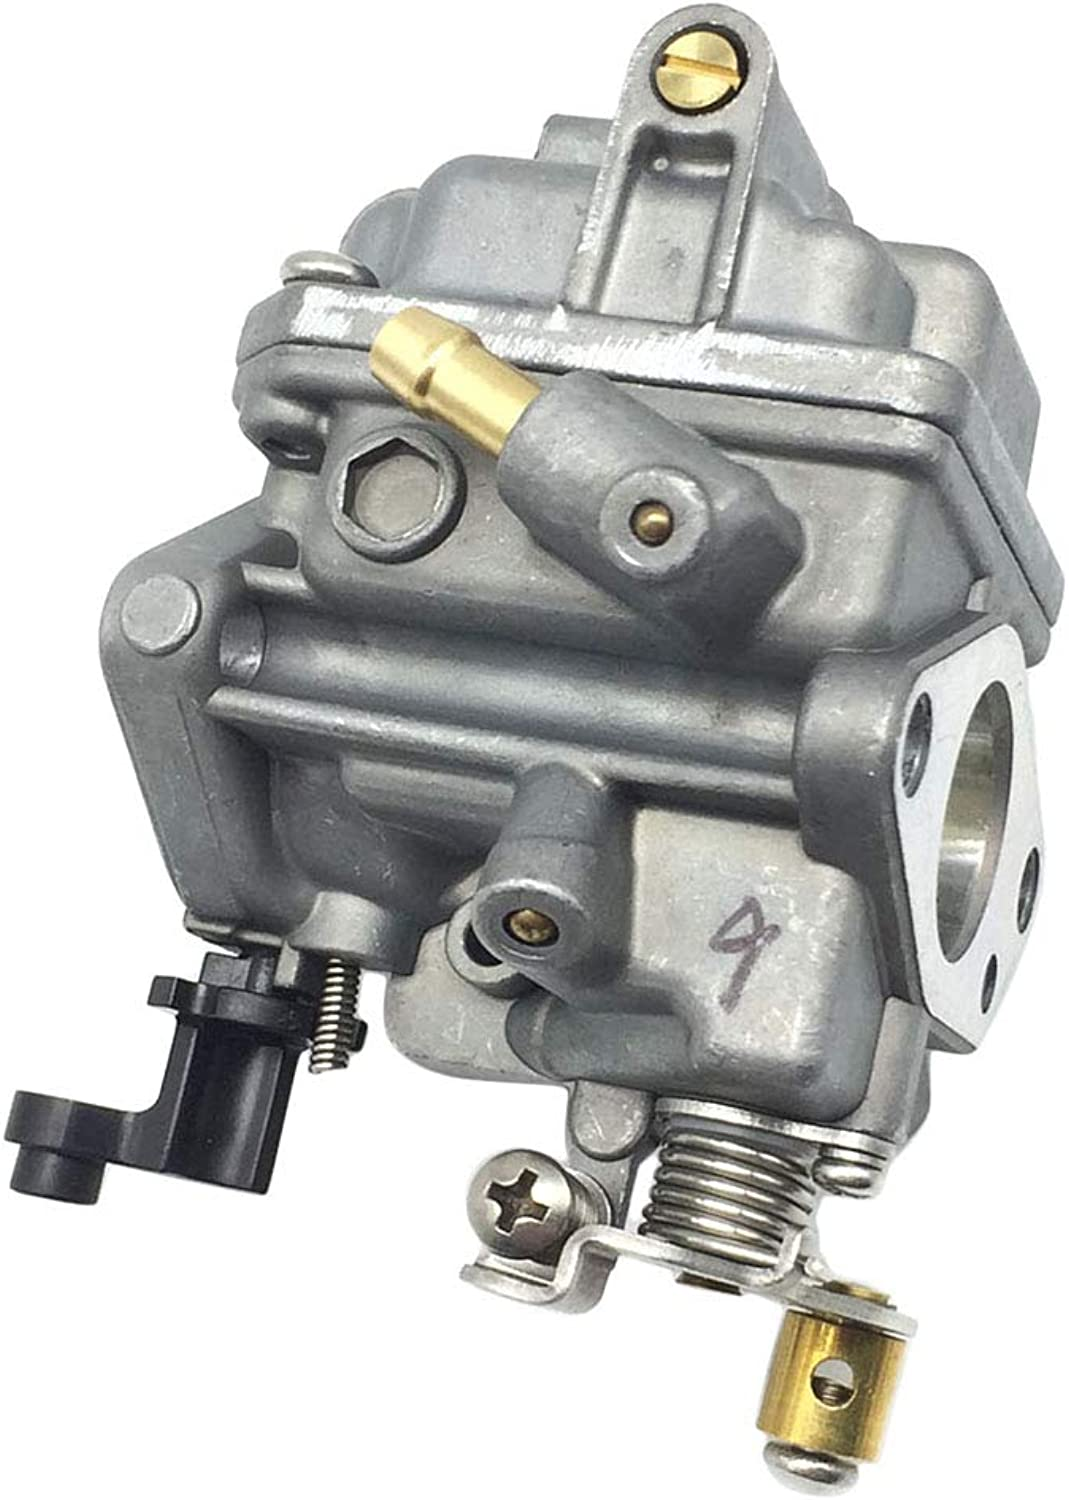 Flameer Carburetor Carb Assy for Yamaha Four Stroke Outboard 6HP